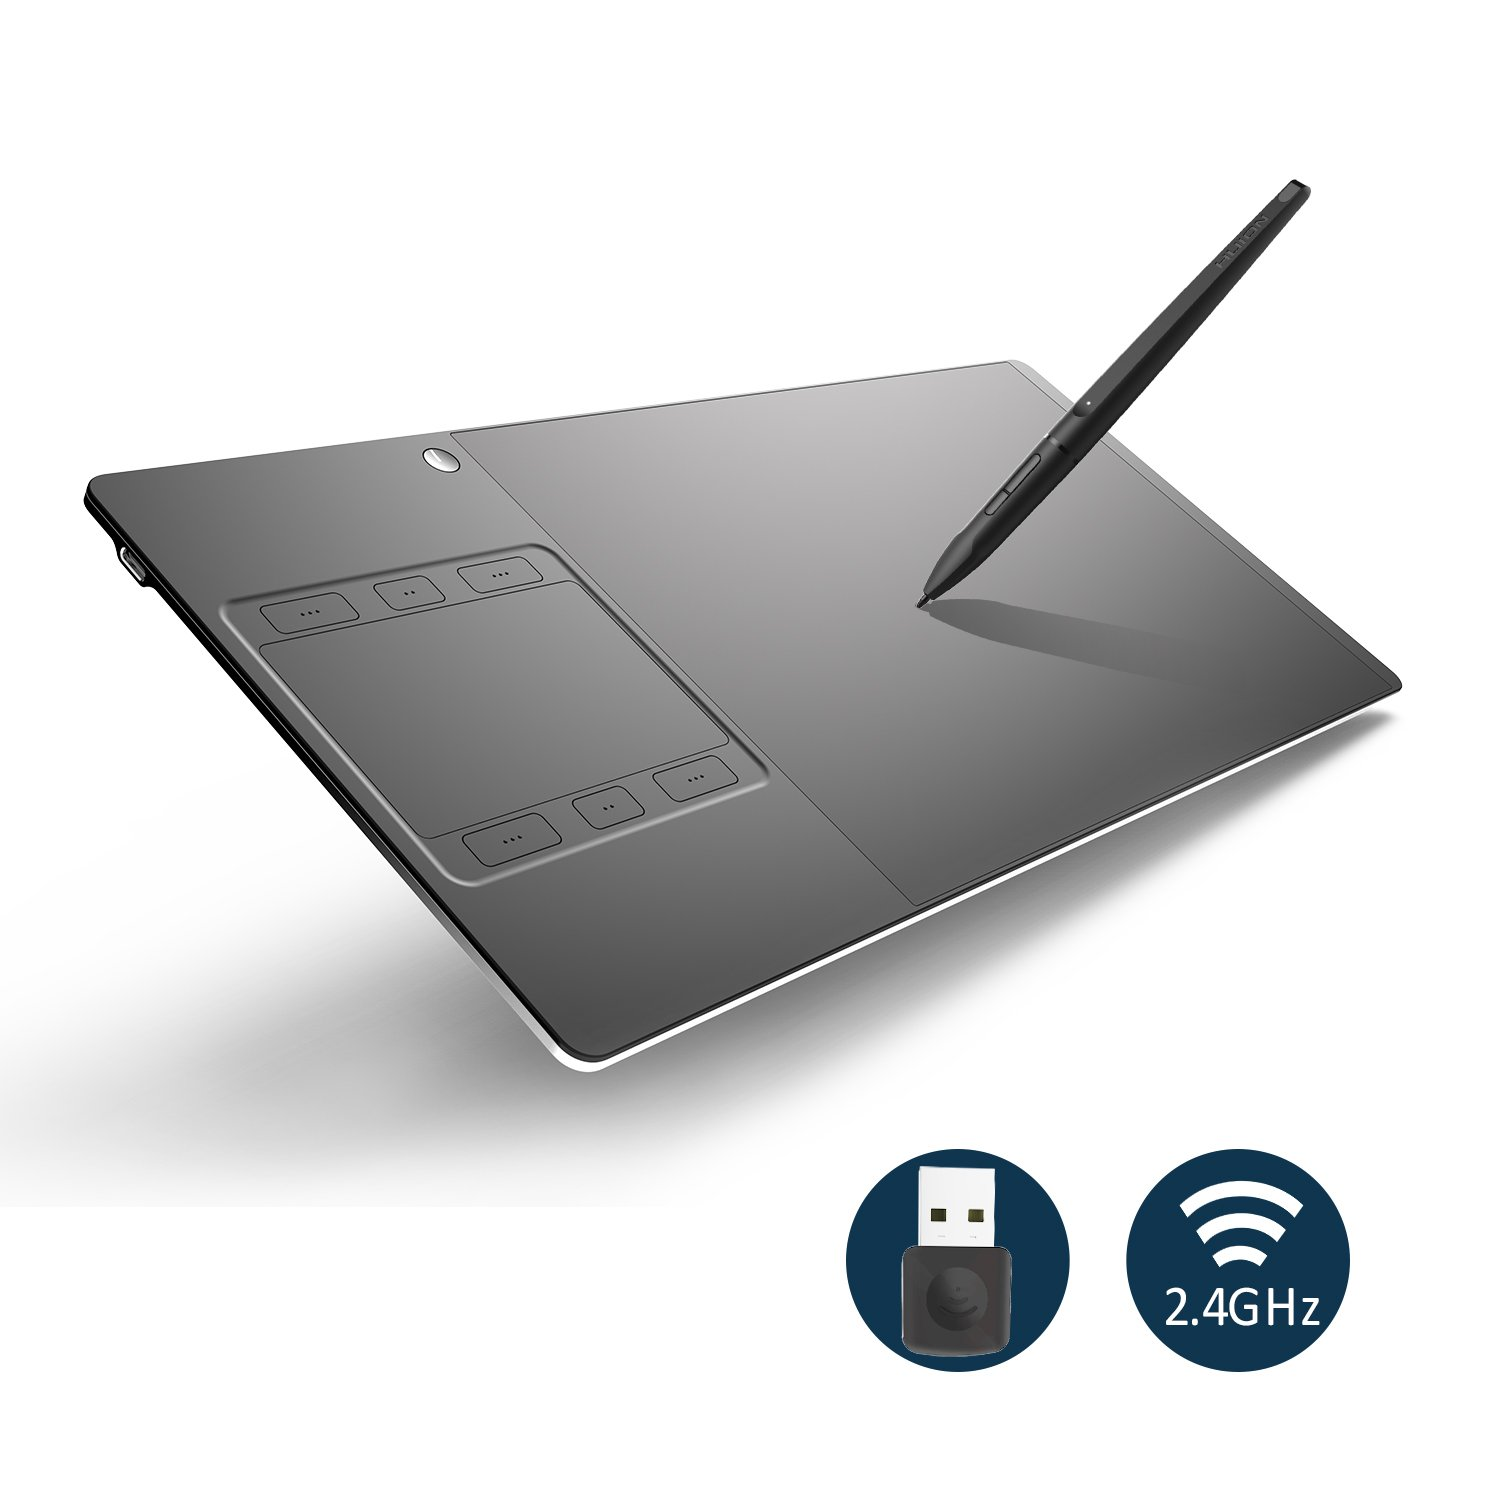 Huion INSPIROY G10T Wireless Digital Pen Tablet Graphics Drawing Tablet with 8192 Pressure Sensitivity Touch Function and Express Keys by Huion